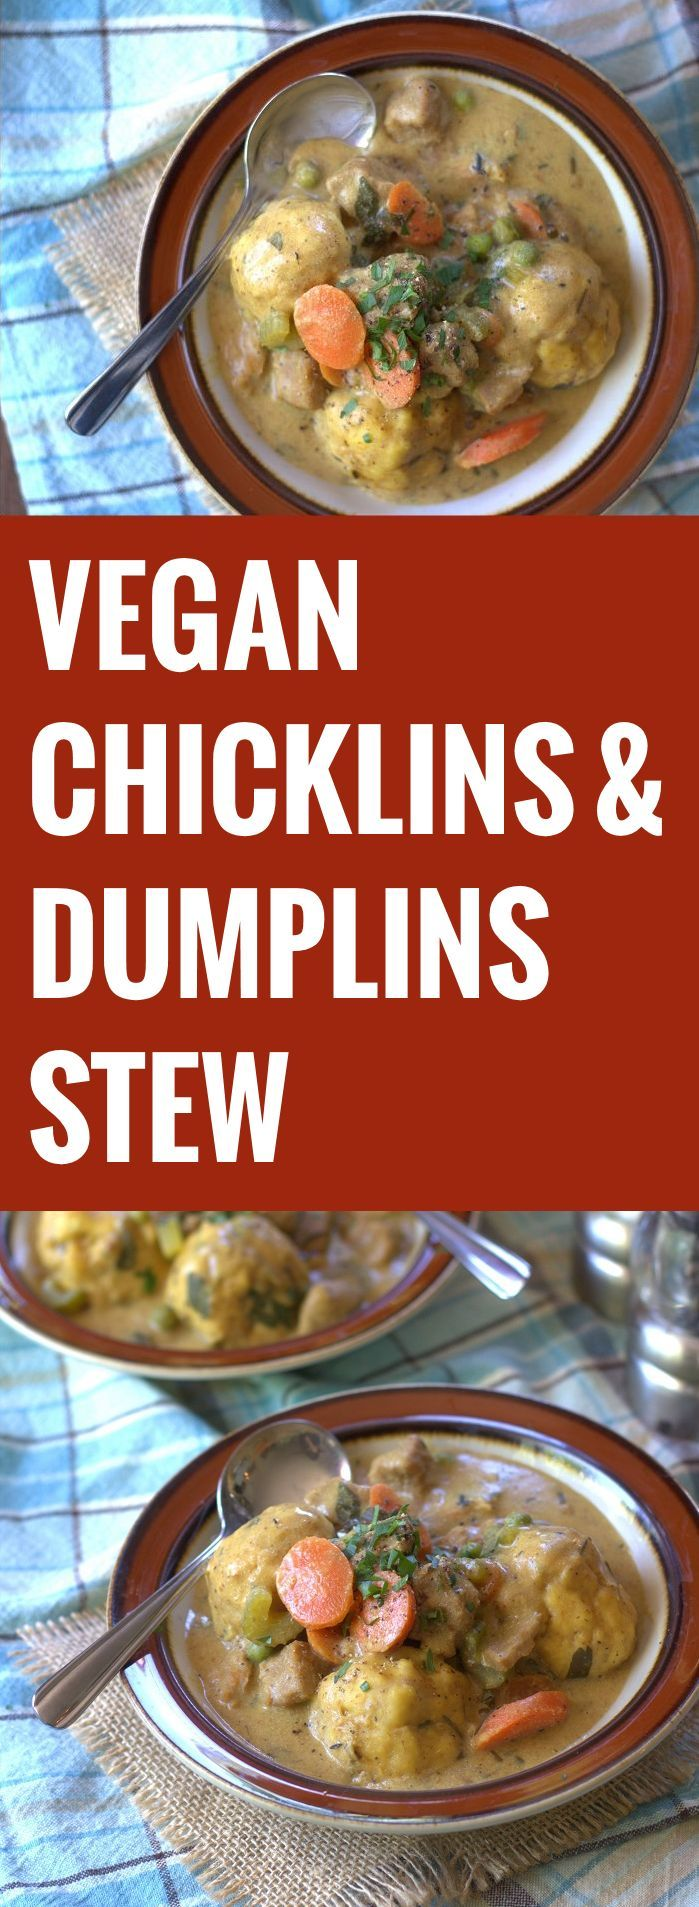 Rosemary Chicklins and Dumplins Stew  hate the recipe name but sounds delicious ingredients.Mastering the Art of Vegan Cooking Cookbook Review